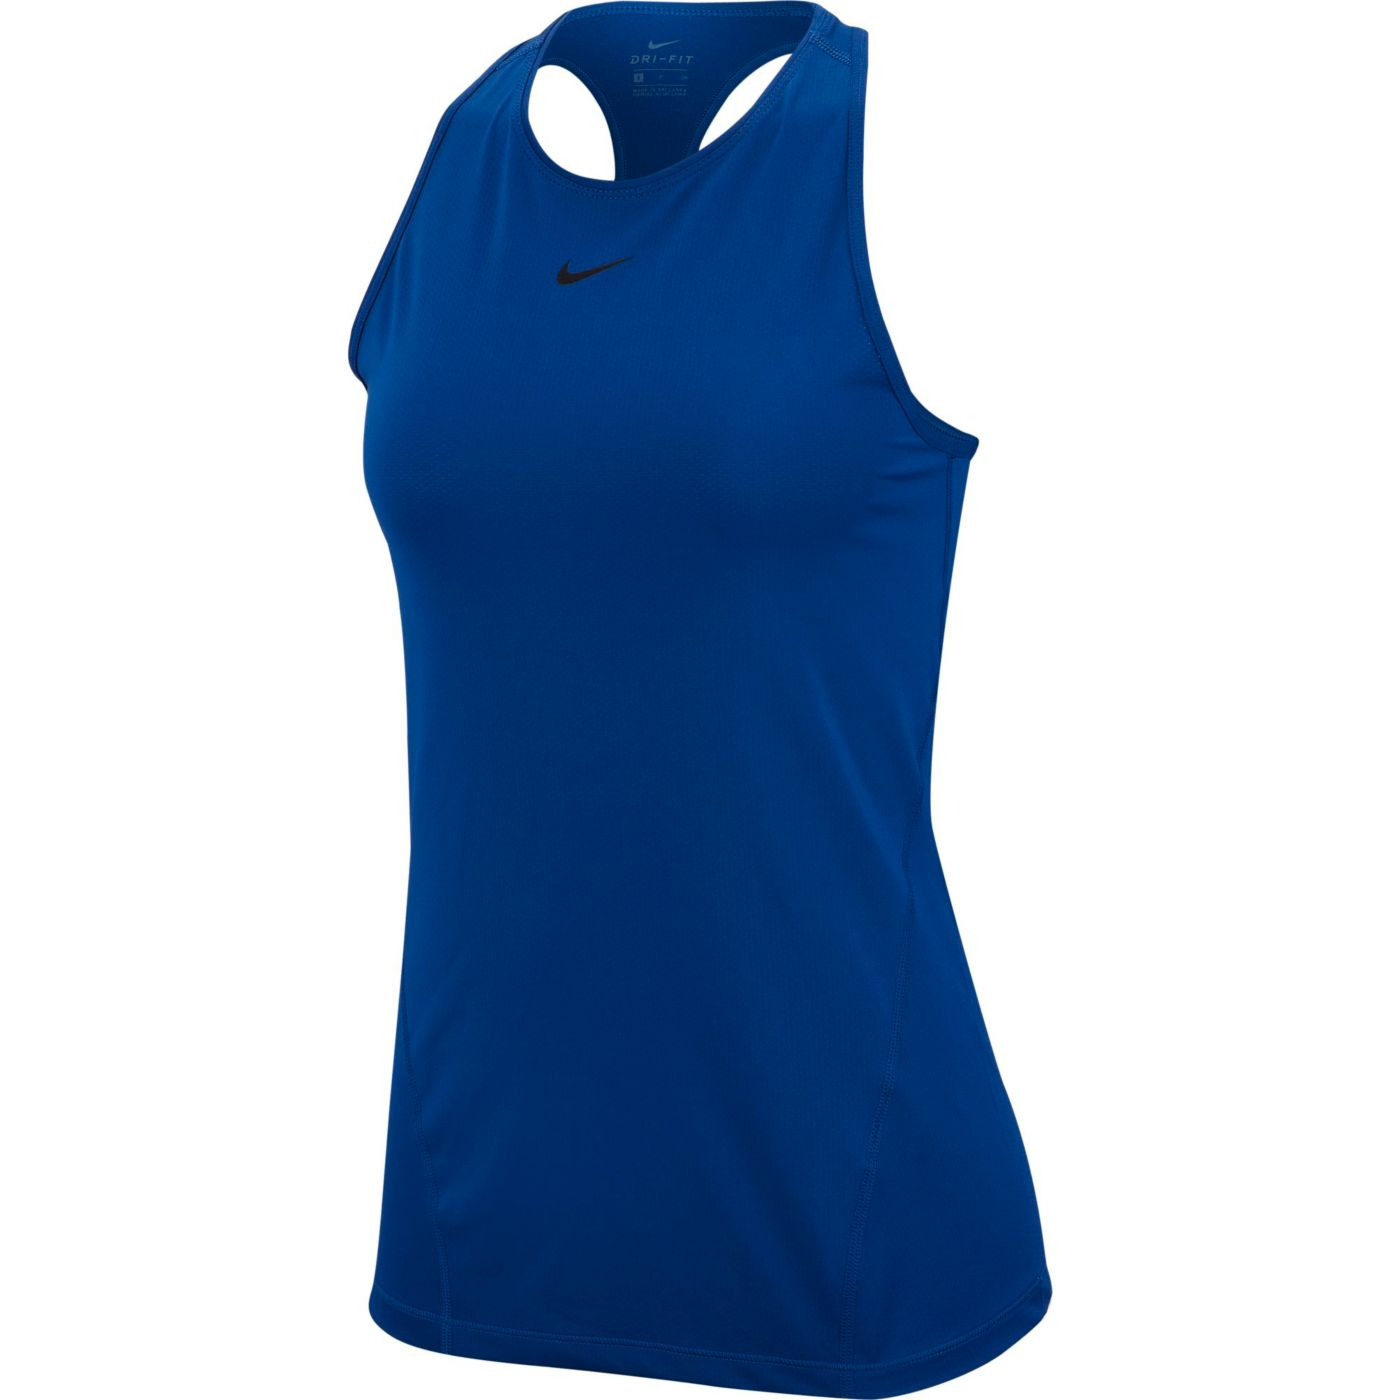 Nike Women's Pro Solid Tank Top